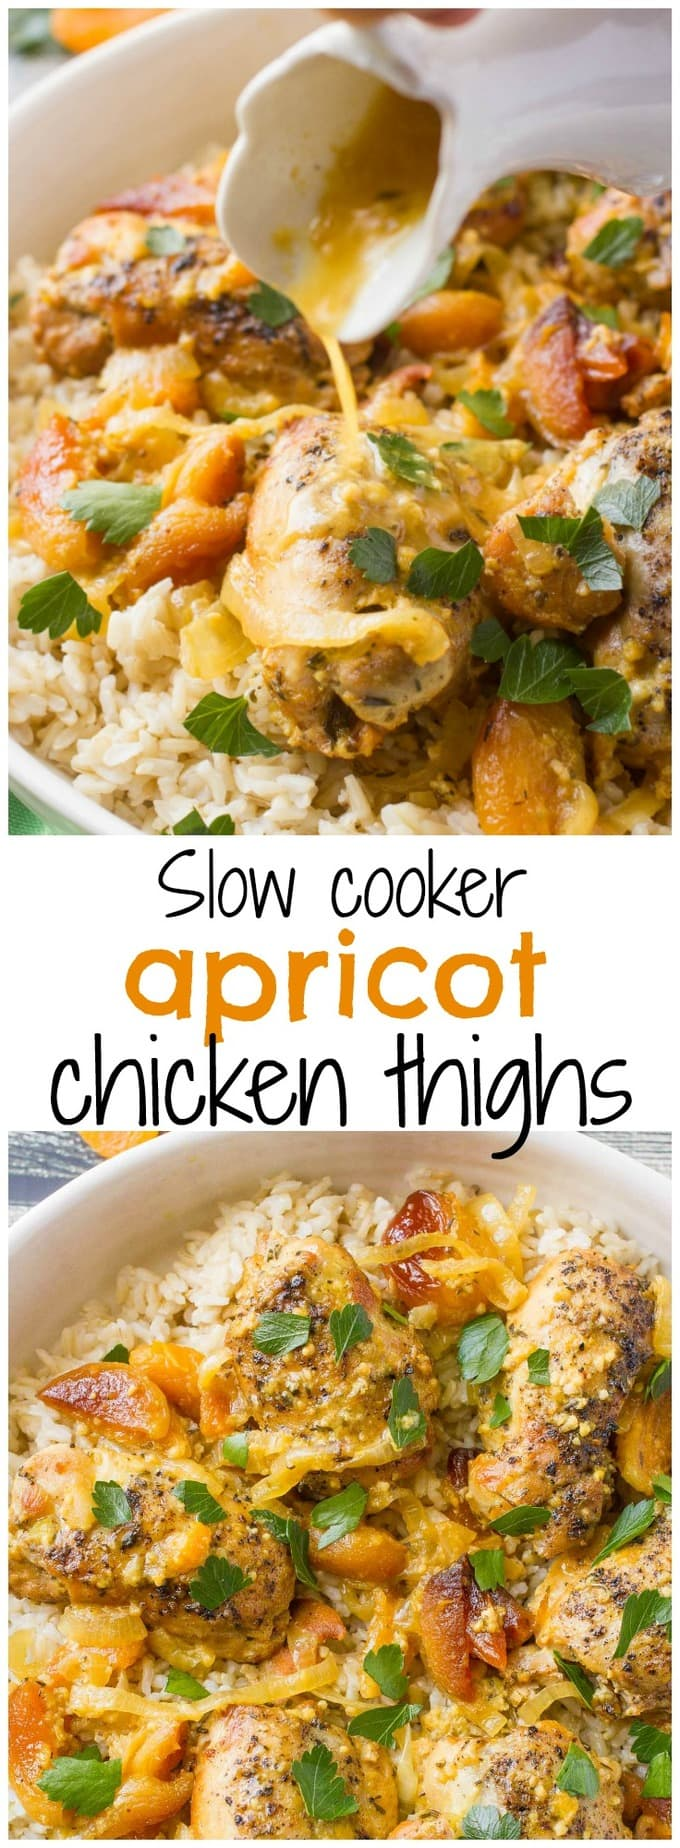 Slow Cooker Apricot Chicken Thighs A Simple Dinner Recipe With Big Fresh Flavors And An